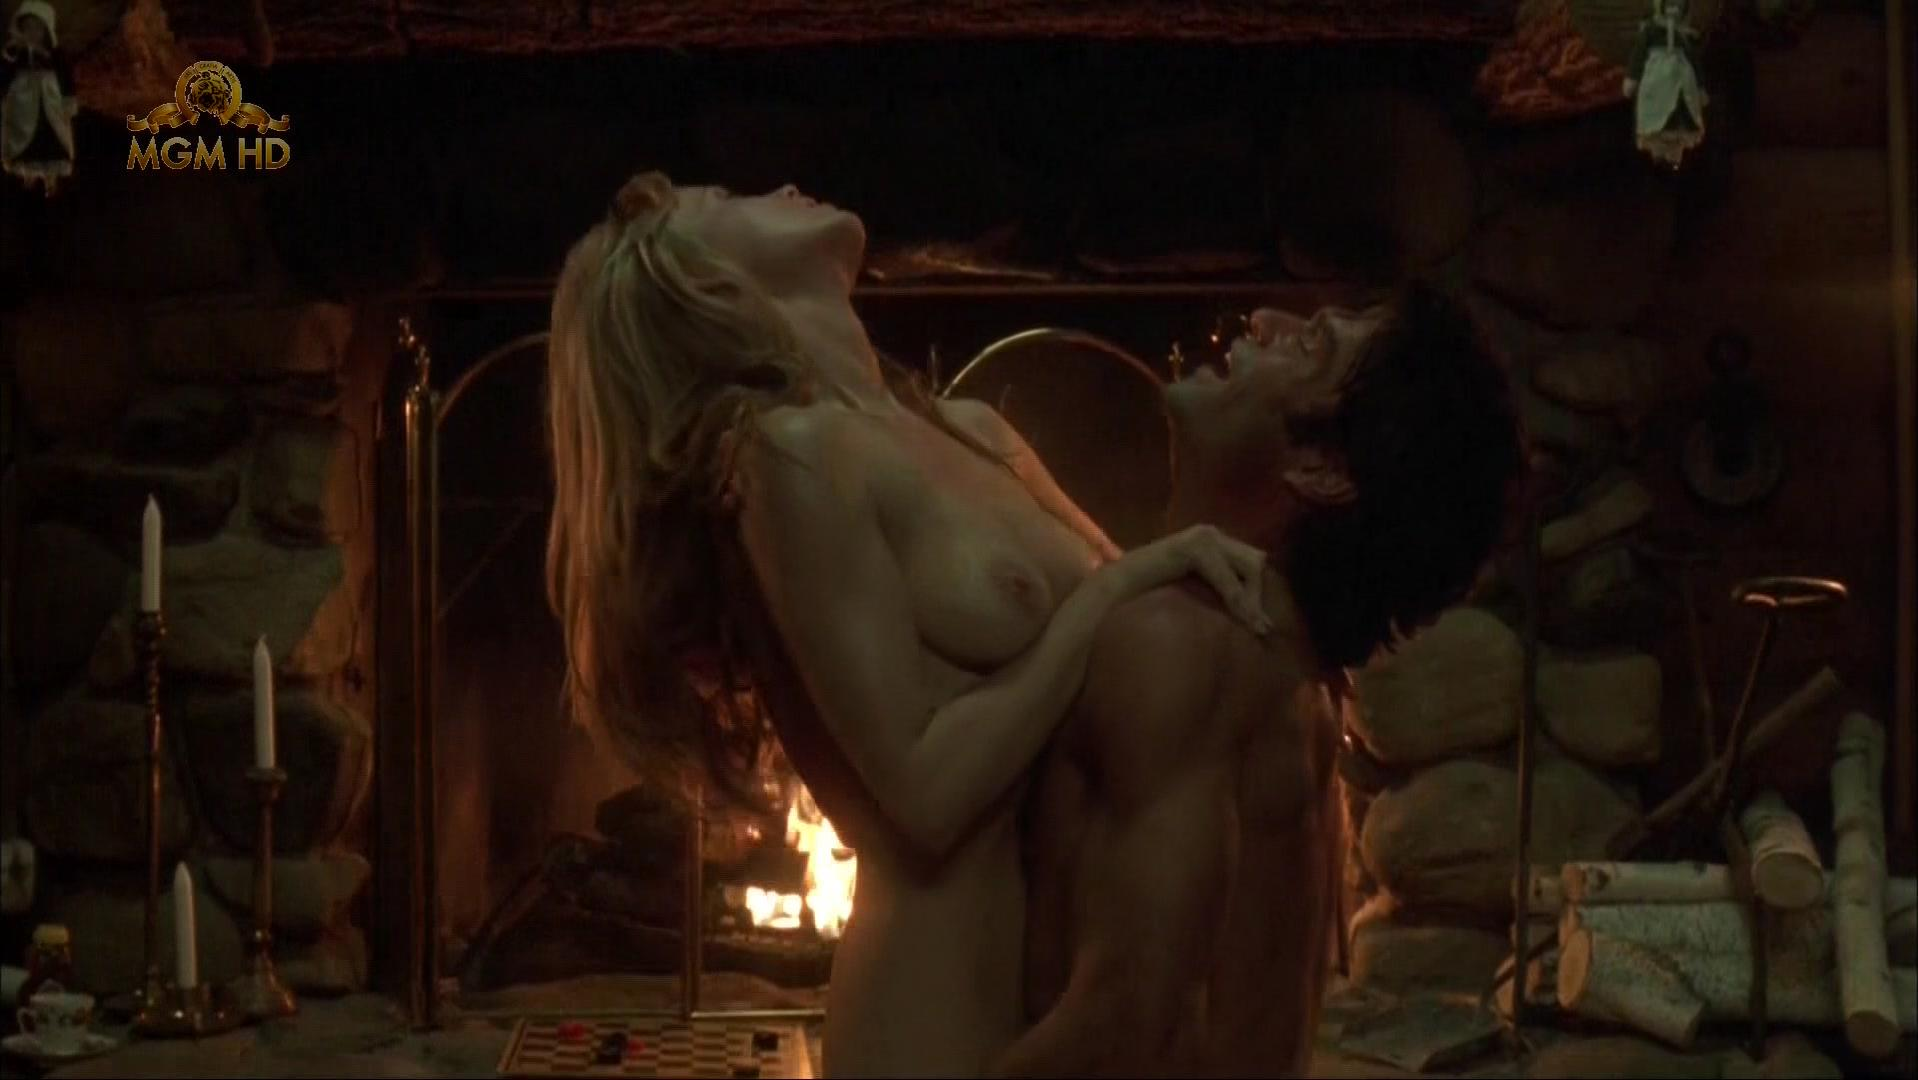 Alonna shaw double impact hd nude - 3 part 4